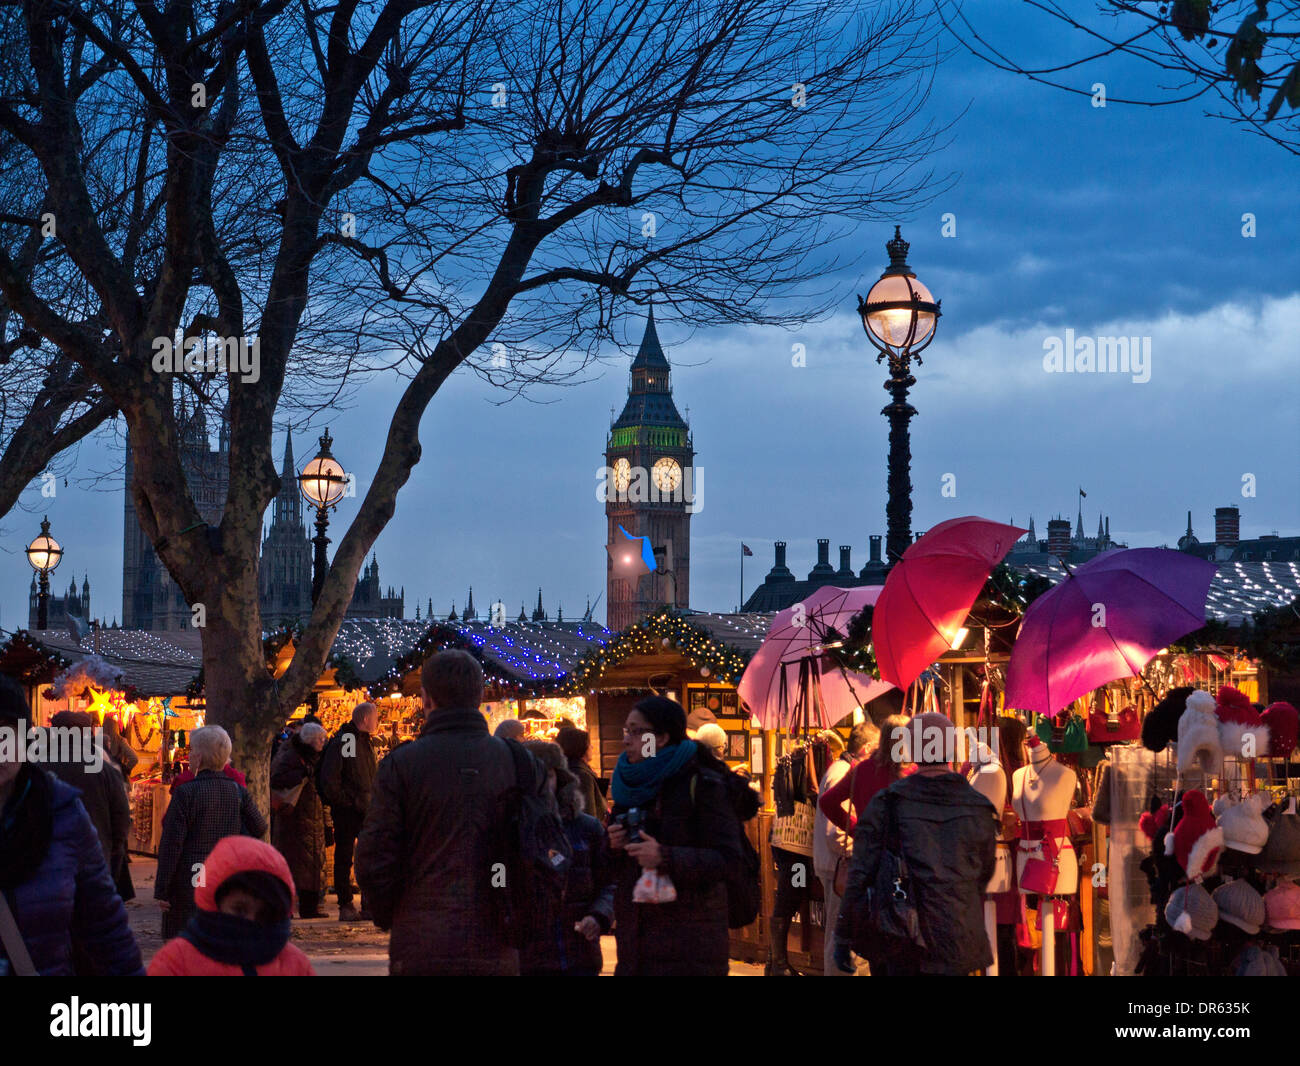 LONDON CHRISTMAS MARKET SHOPPERS LIGHTS South Bank Christmas market stalls and shoppers with Houses of Parliament behind at dusk London UK - Stock Image